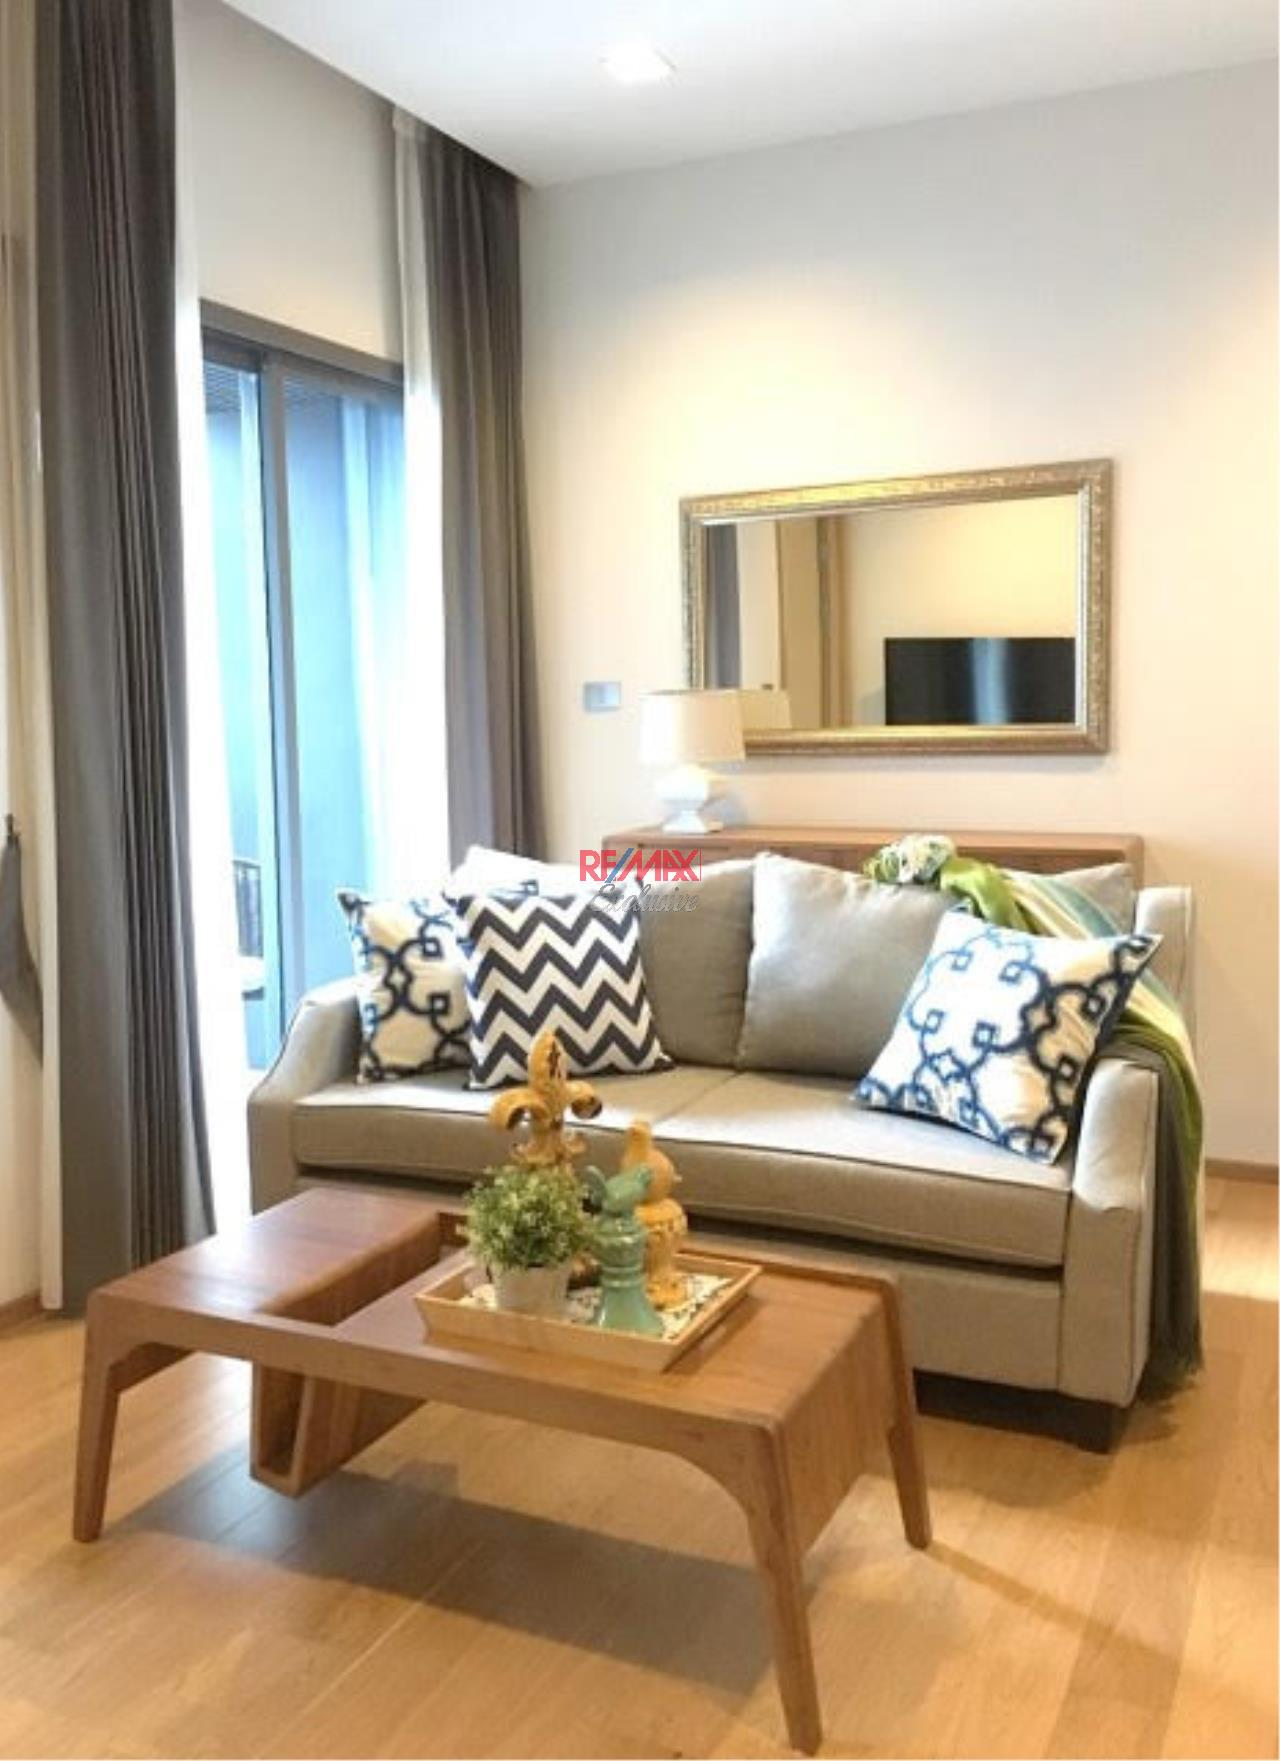 RE/MAX Exclusive Agency's Condominium in town For Rent 40,000 THB  1